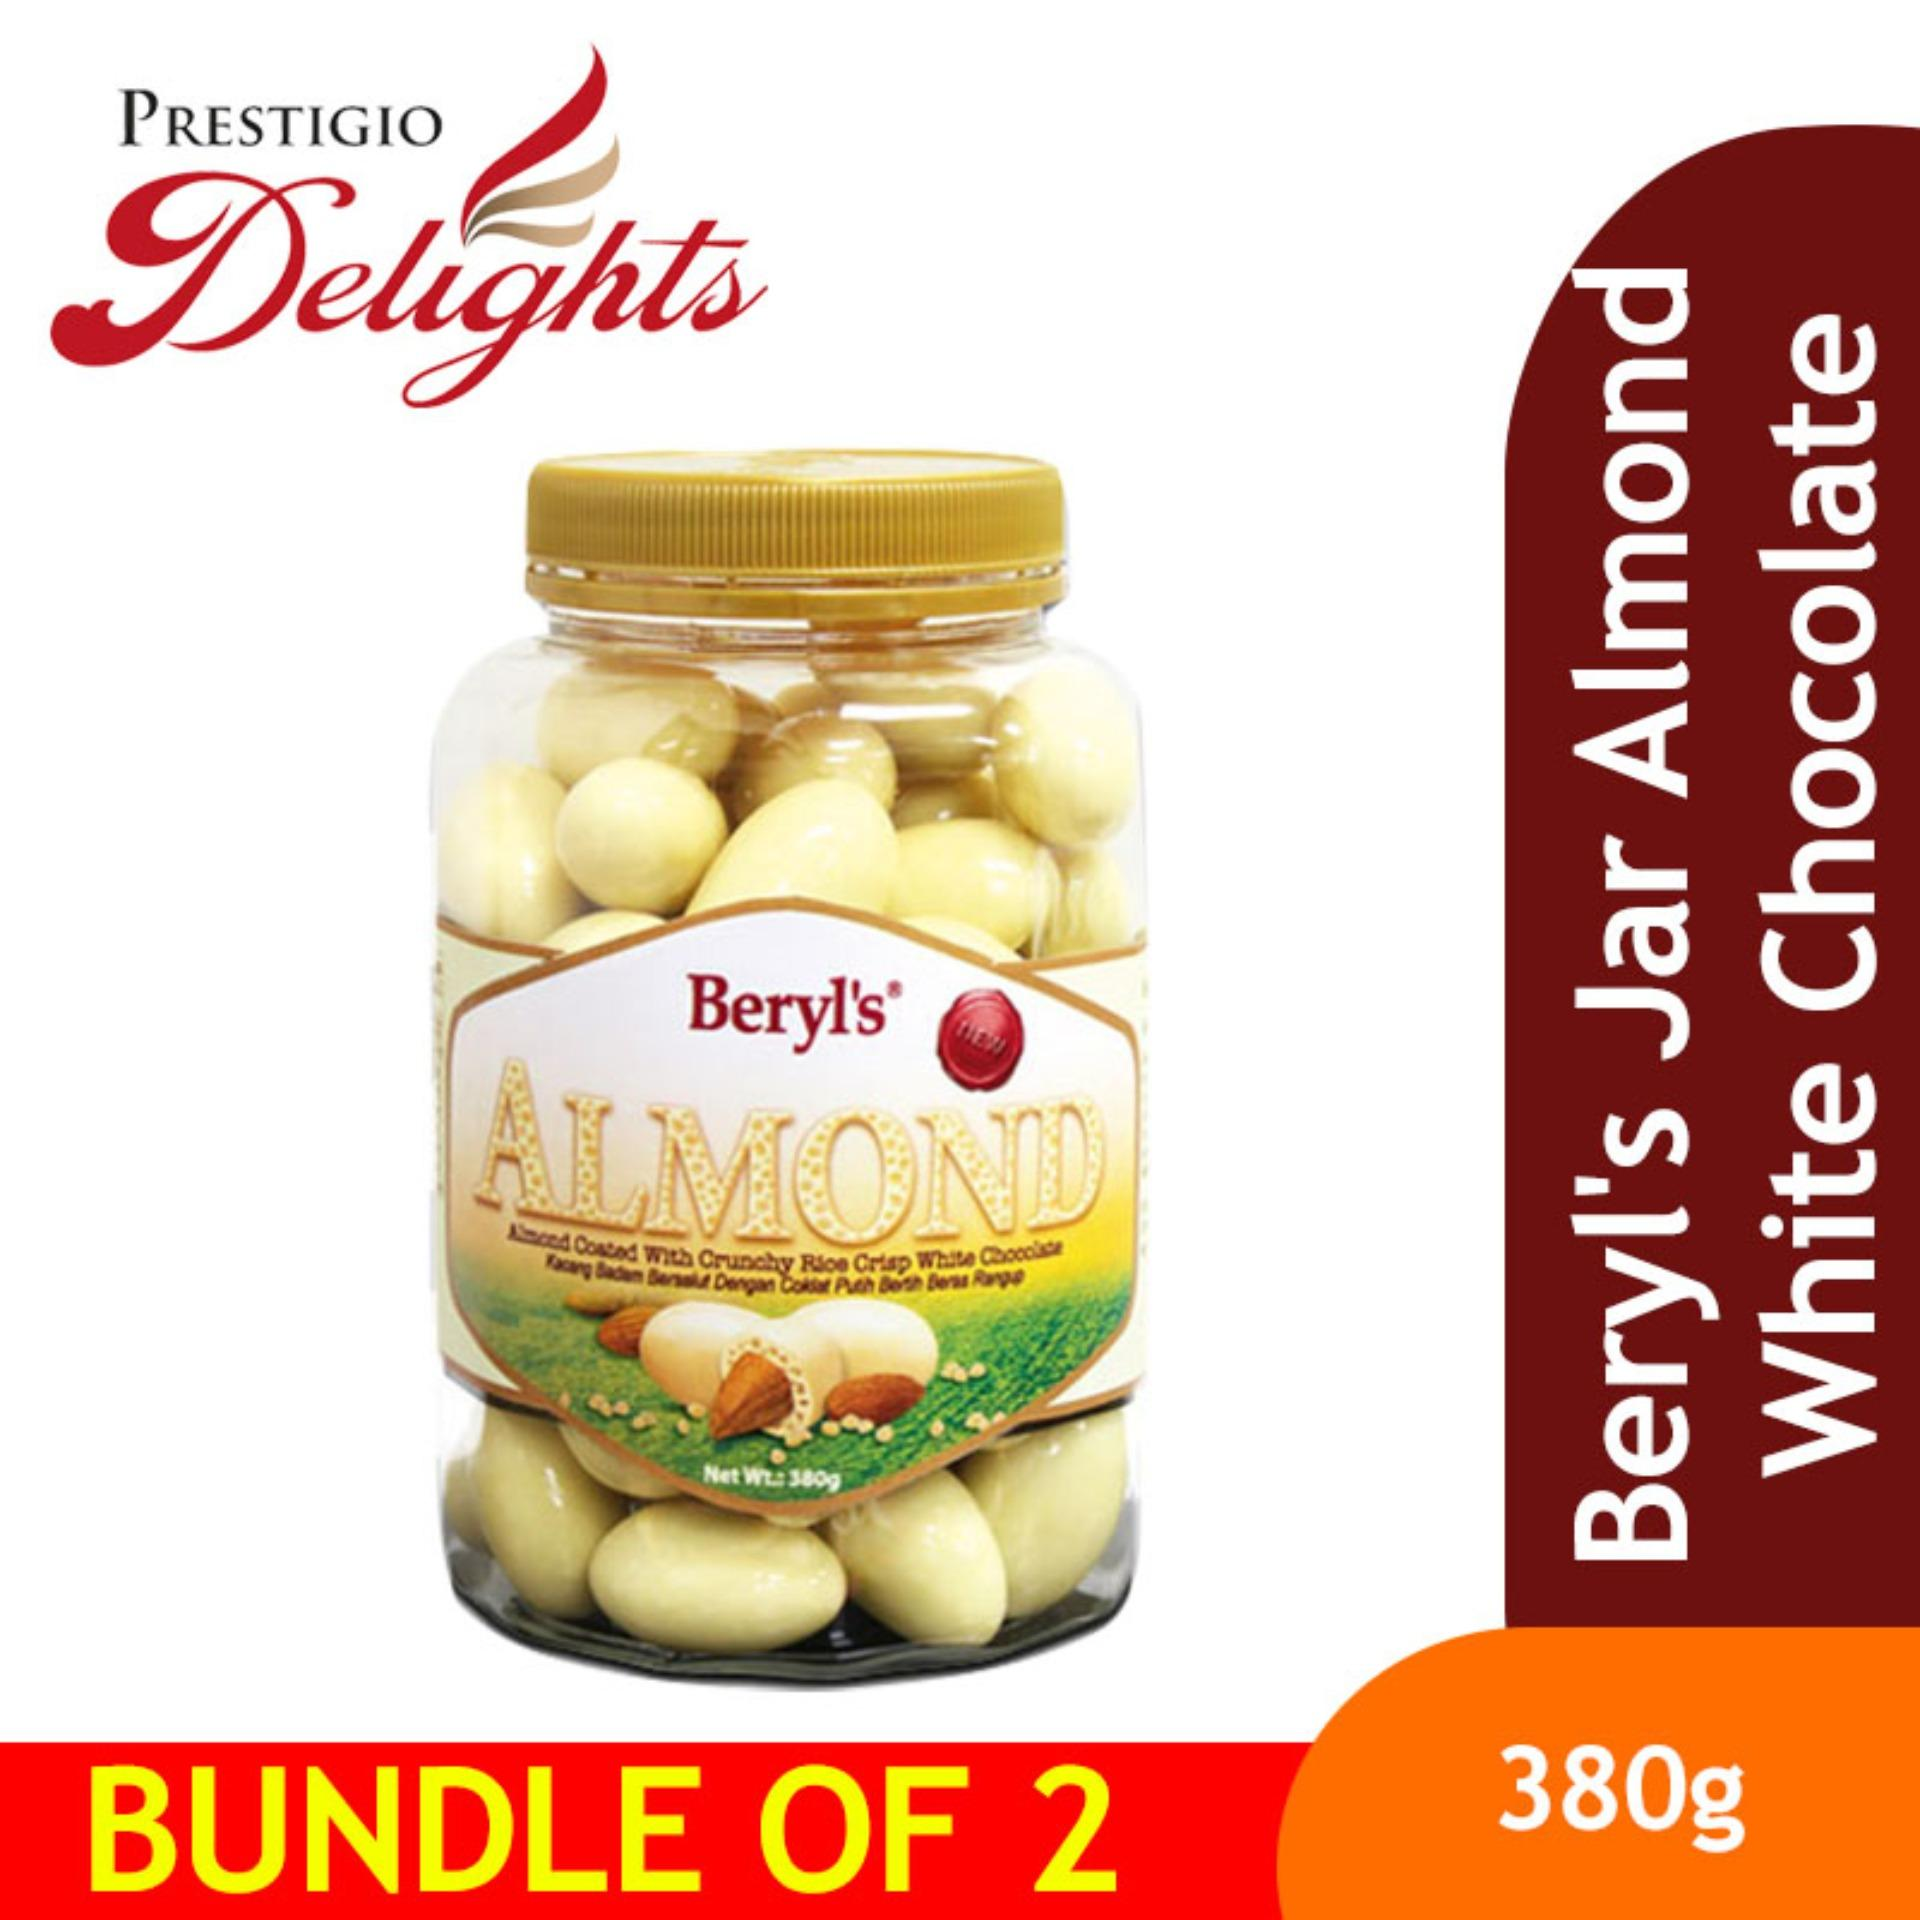 Beryls Jar Almond White Chocolate Bundle Of 2 By Prestigio Delights.